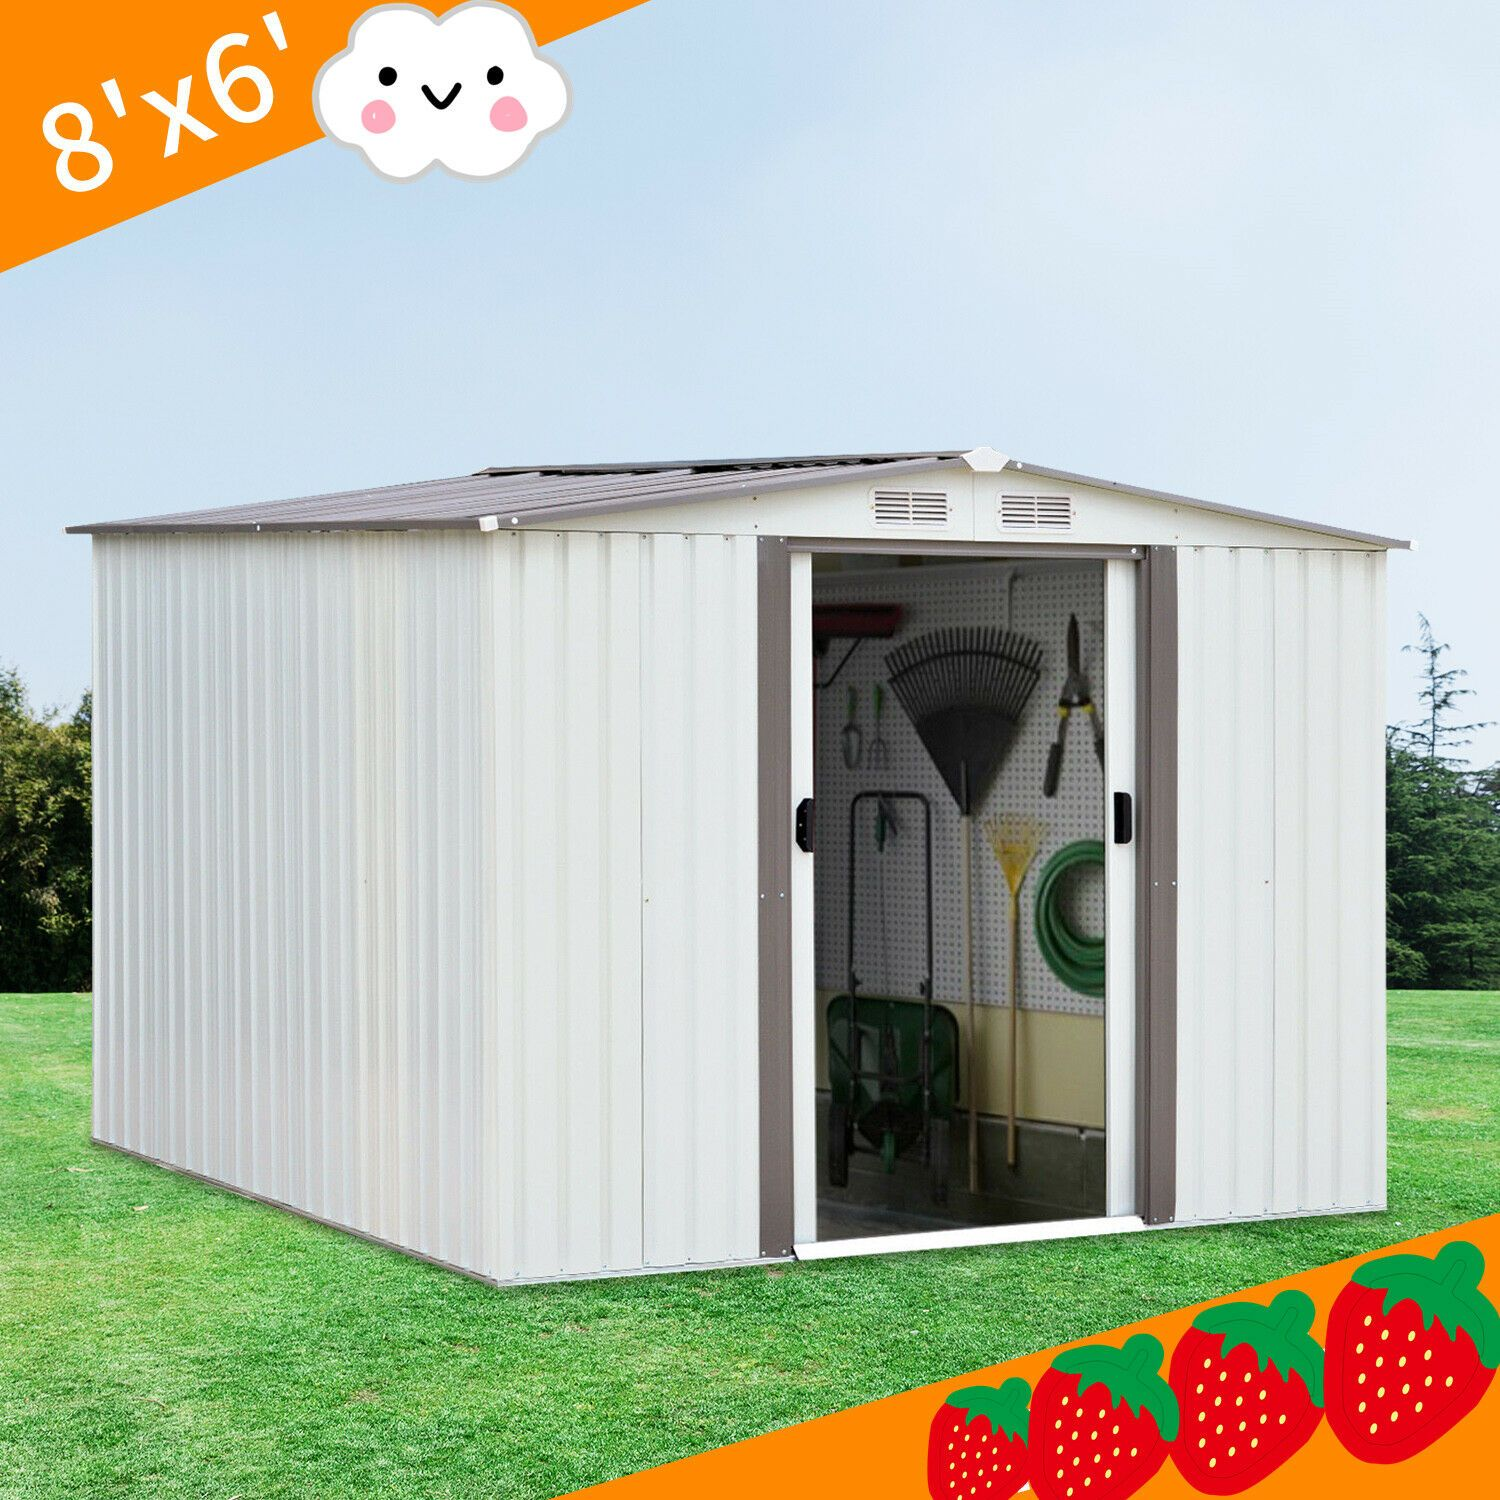 Details About 8 X6 House Sliding Door Outdoor Garden Storage Shed Tool New Outdoor Garden Storage